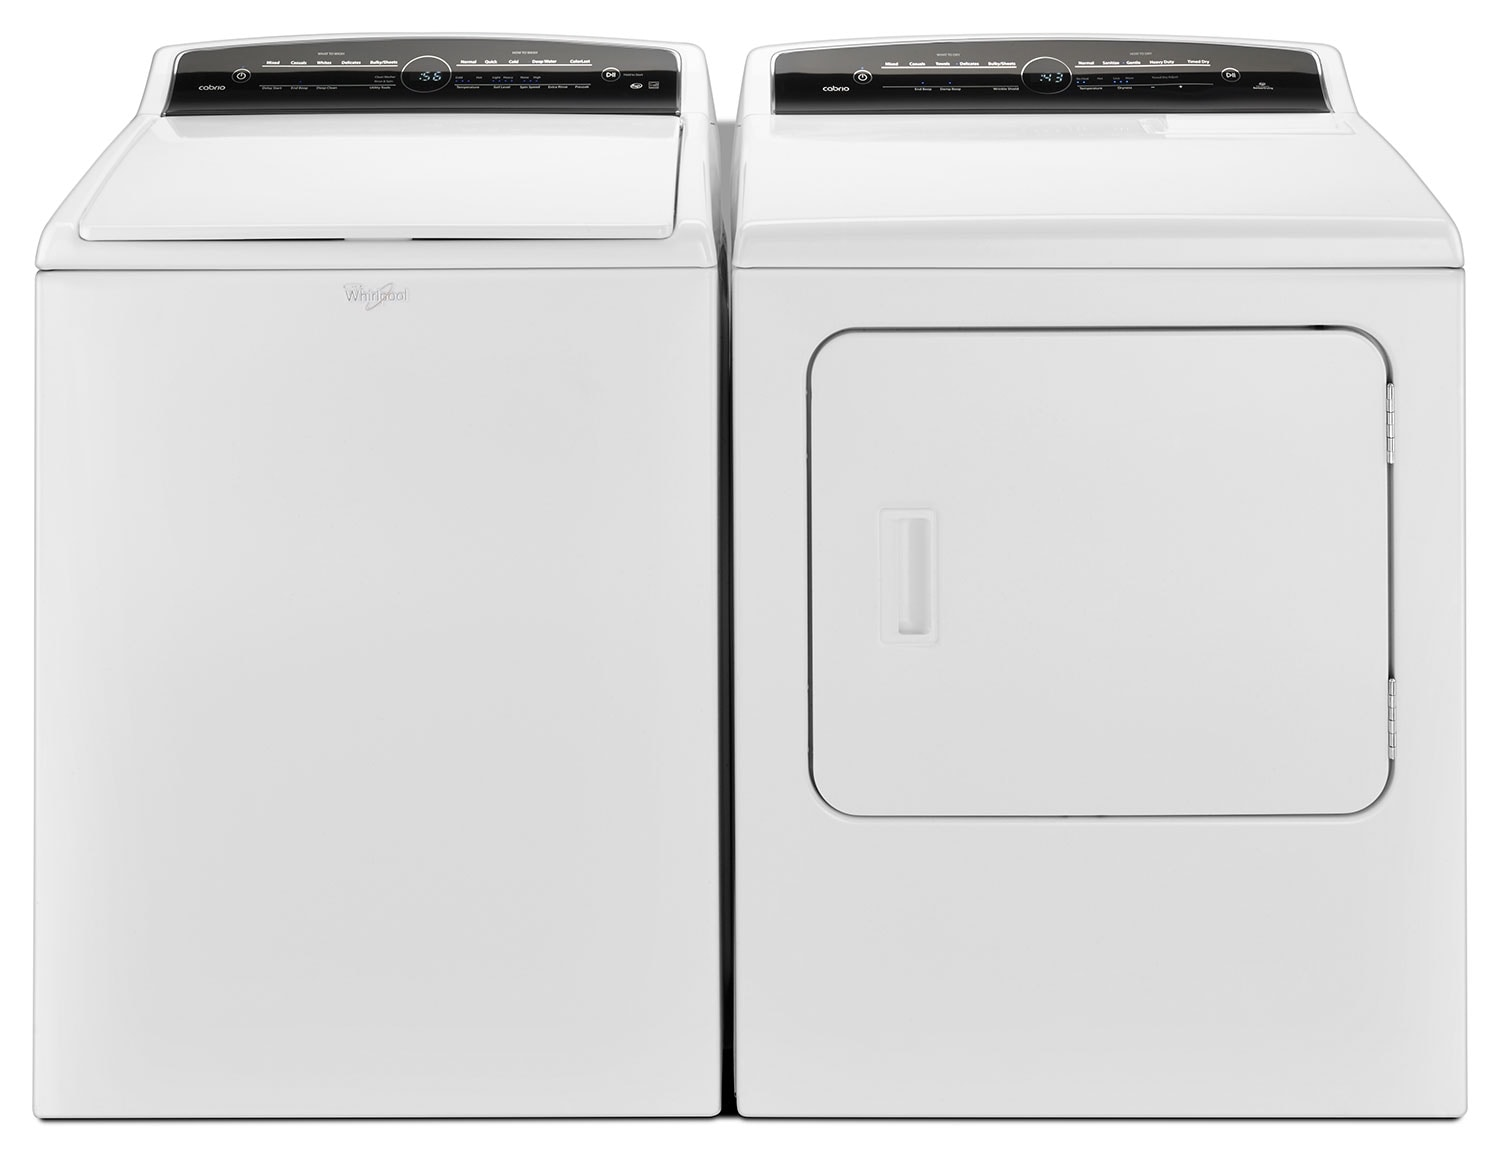 Washers and Dryers - Whirlpool® Cabrio® 5.0 Cu. Ft. Top-Load Washer and 7.0 Cu. Ft. Electric Dryer - White